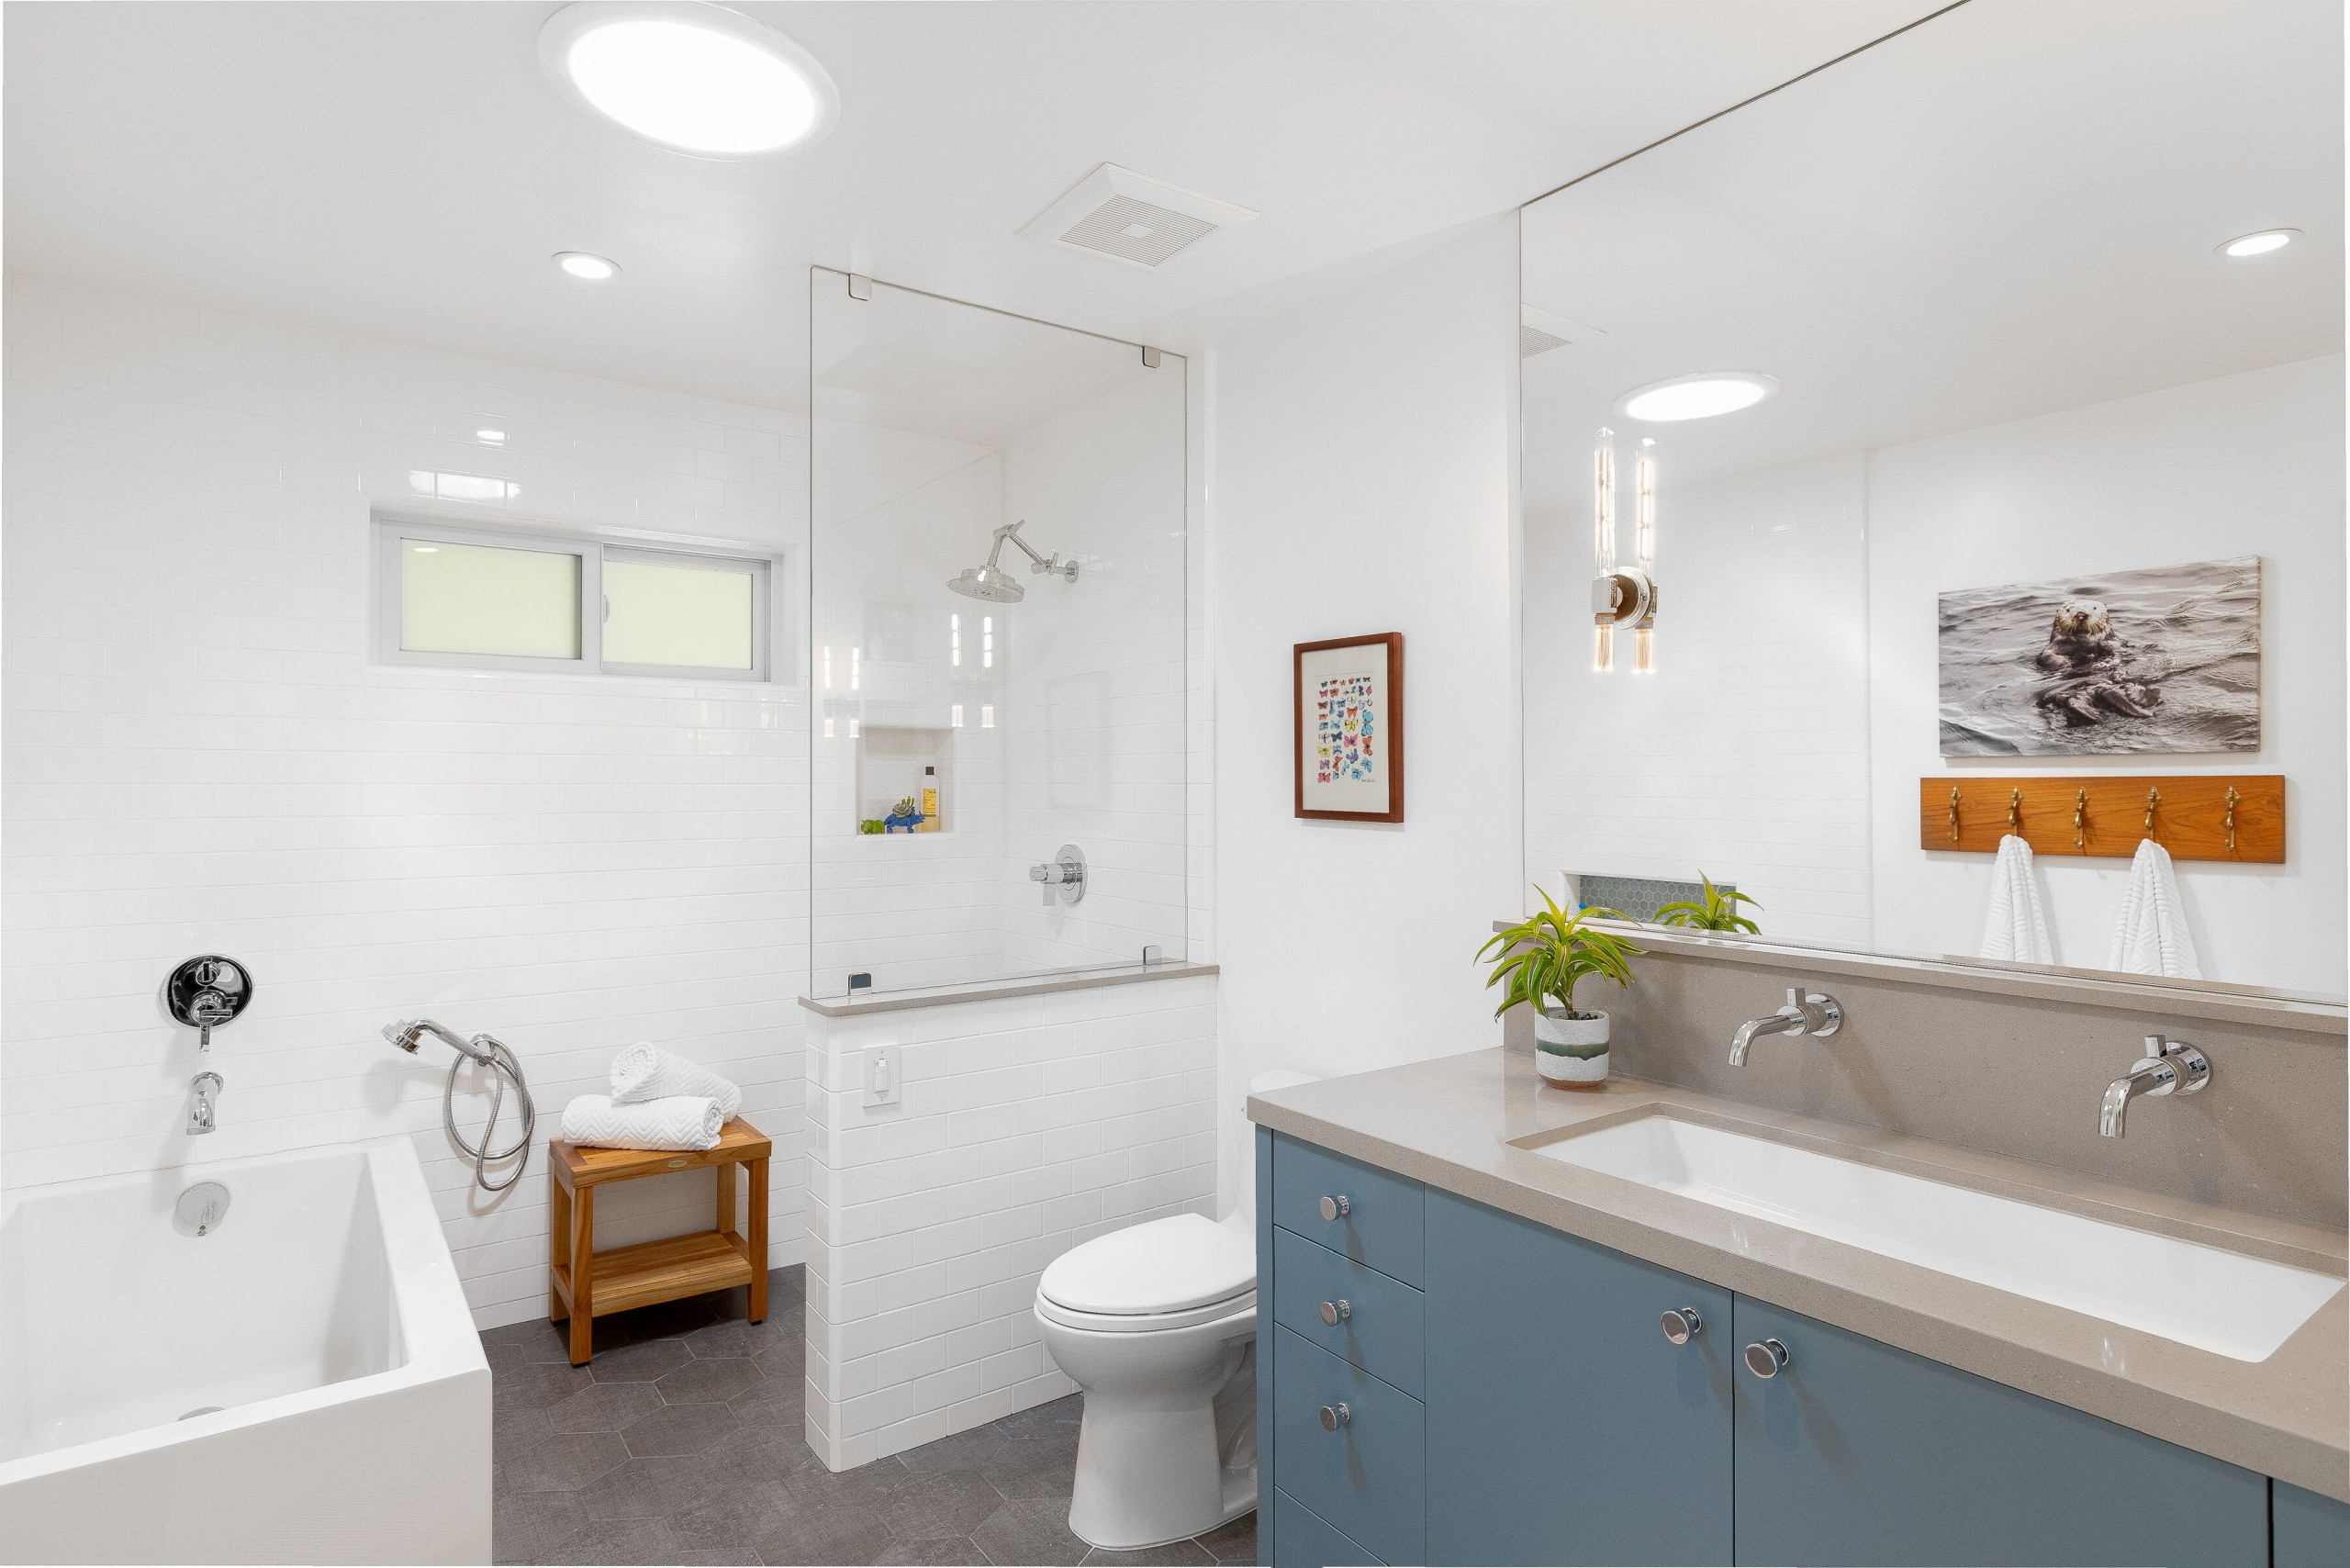 18 Beautiful Kids Bathroom Pictures Ideas October 2020 Houzz